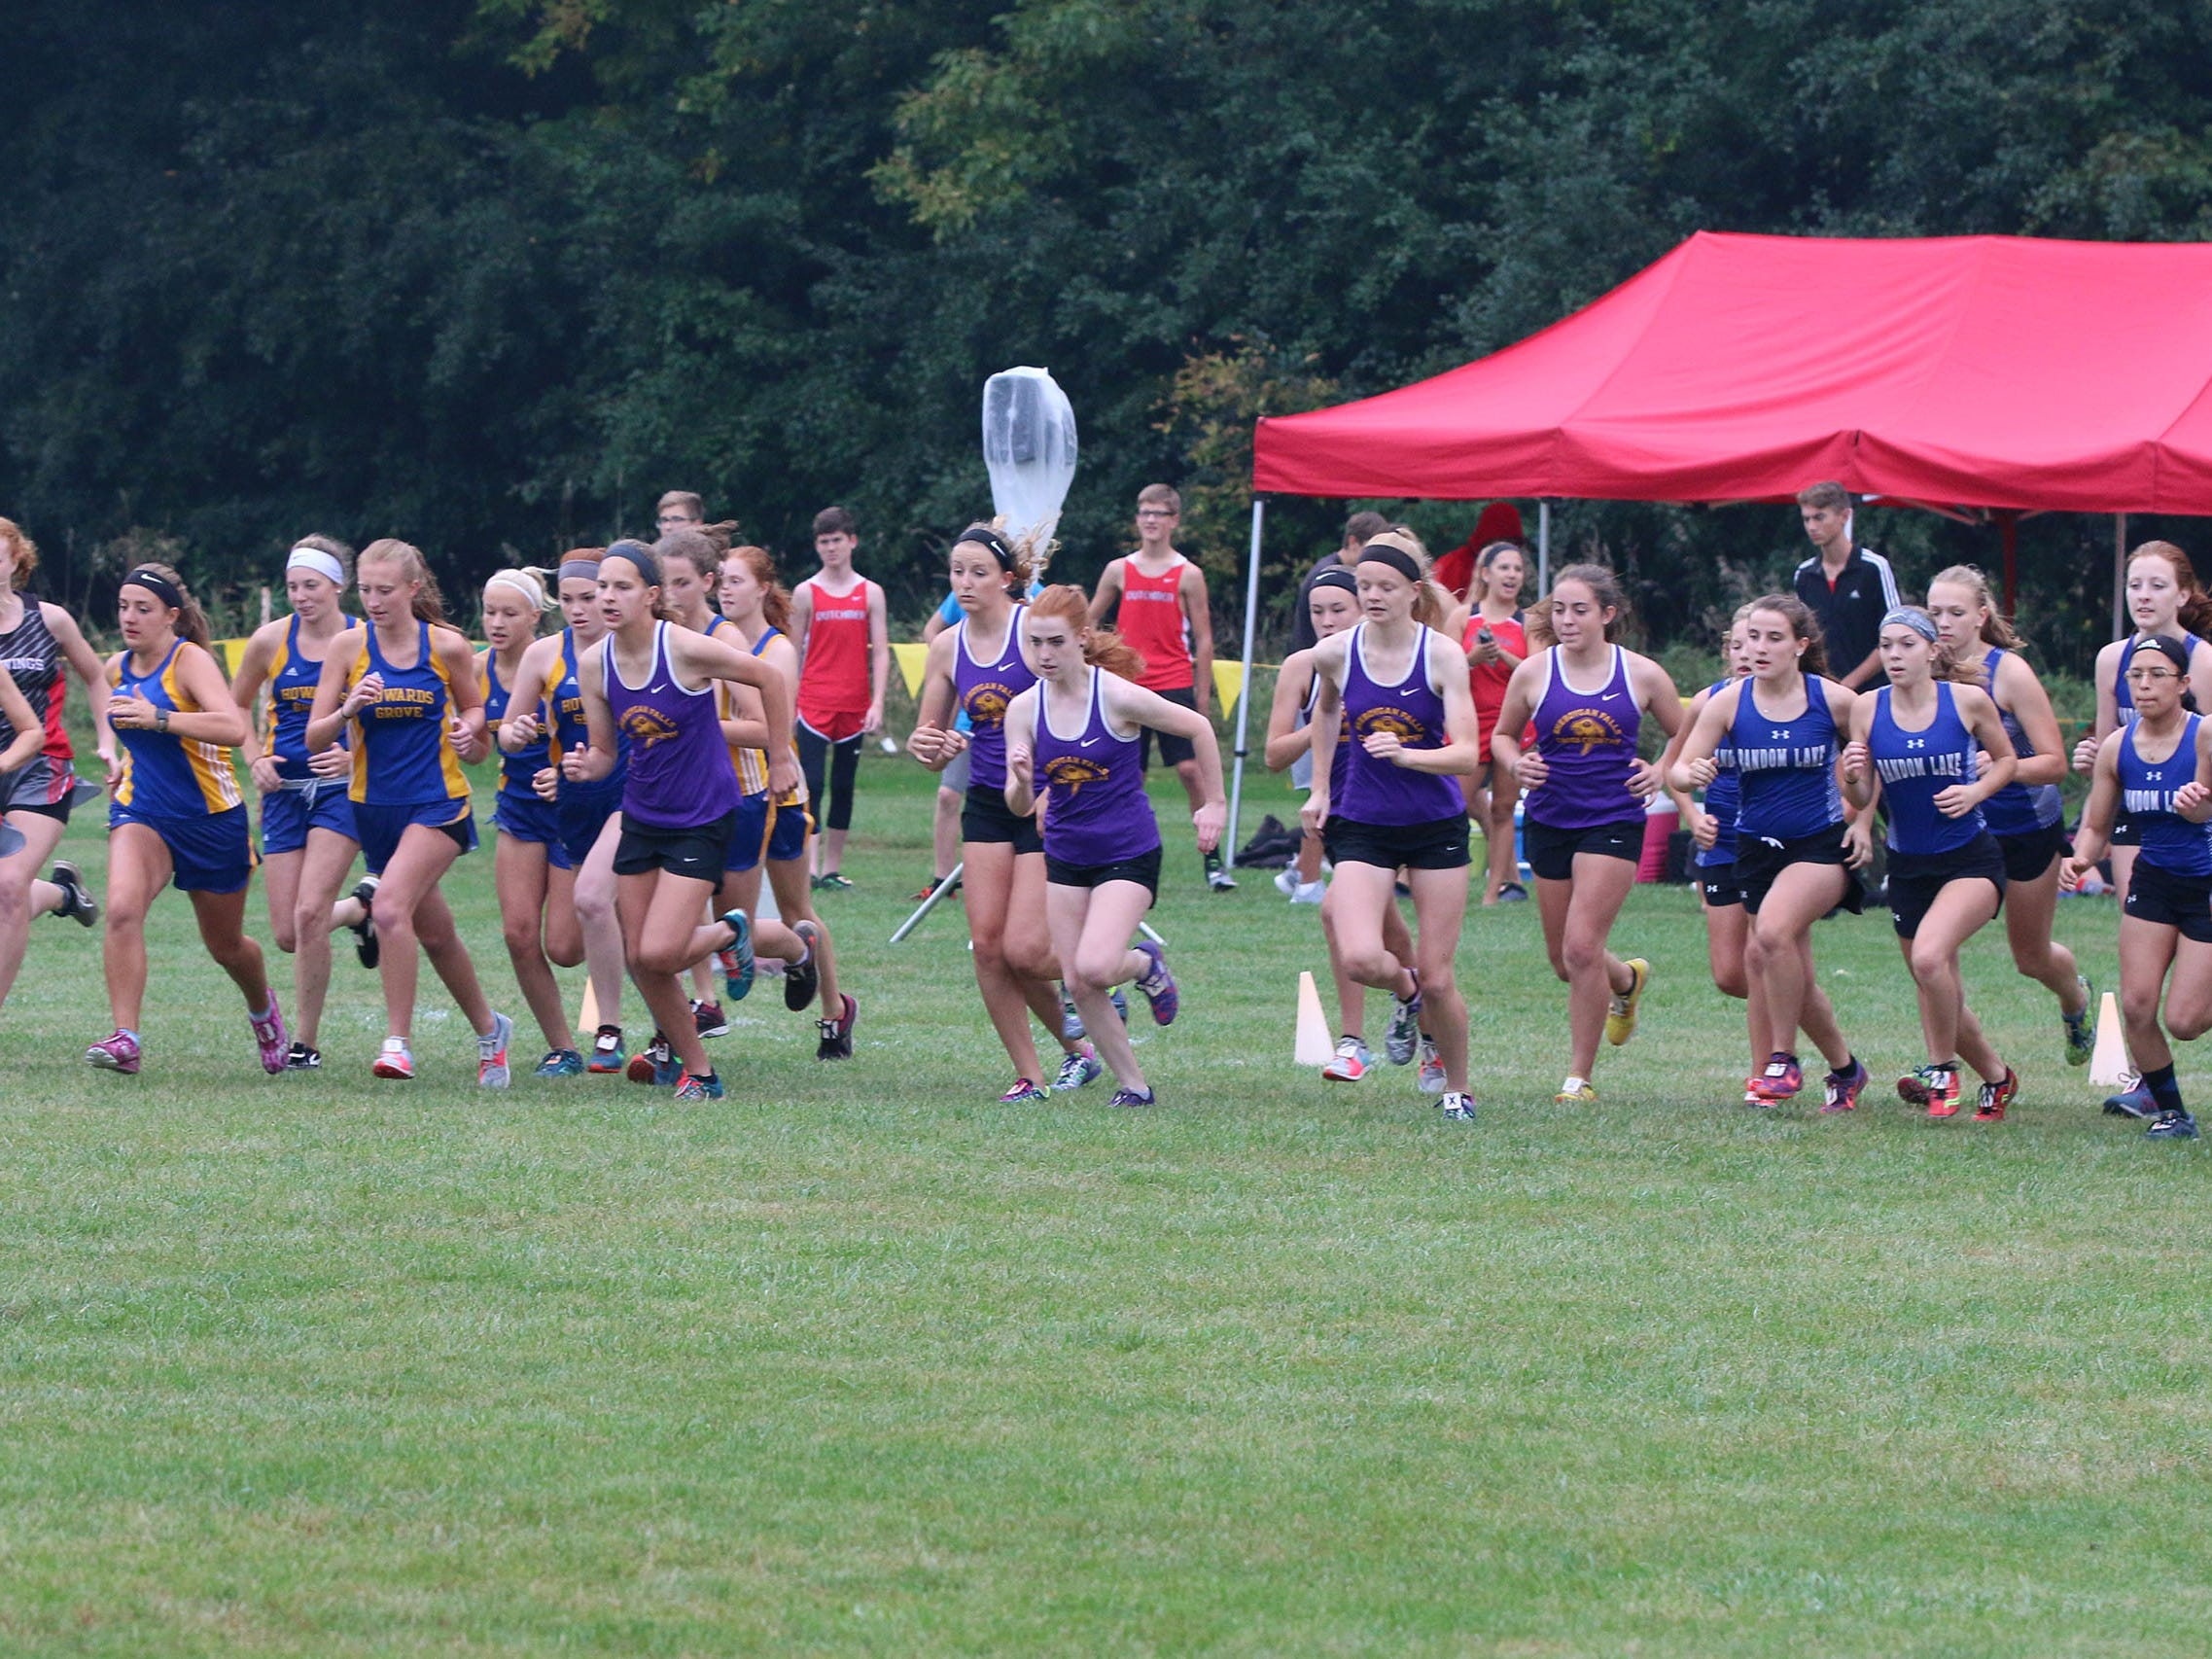 The start of the varsity girls portion of the Sheboygan County Cross Country Invitational, Tuesday, September 25, 2018, in Sheboygan, Wis.